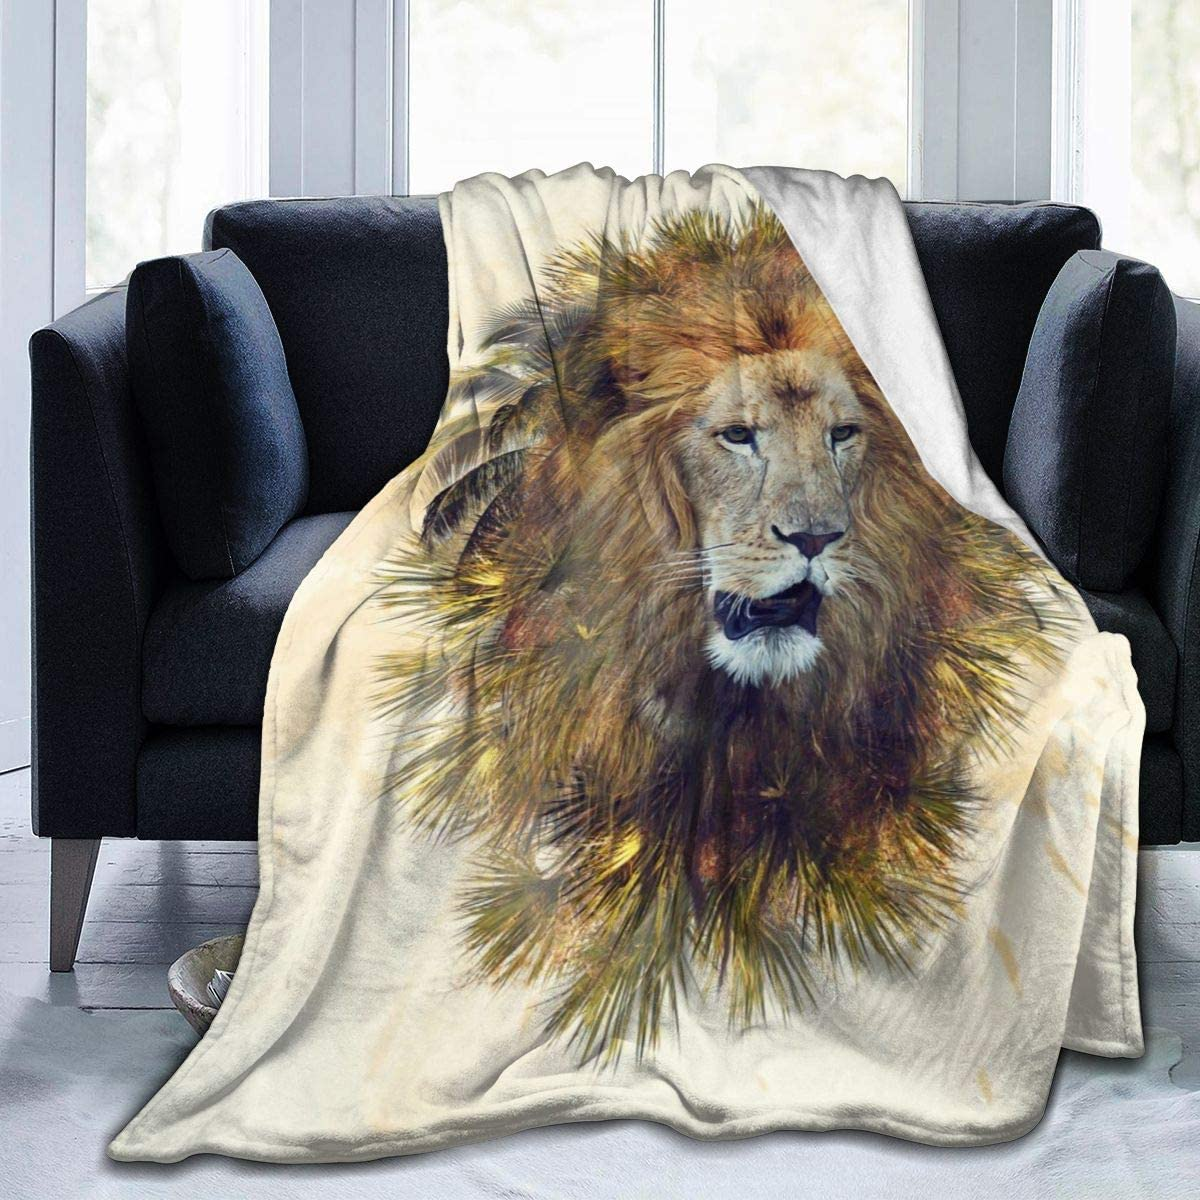 Micro Fleece Plush Soft Baby Blanket Double Exposure Effect Of Lion Head Palm Trees Fluffy Warm Toddler Bed/Crib Blanket Lightweight Flannel Daycare Nap Kids Sleeping Tummy Time Throw Blanket Girls Bo